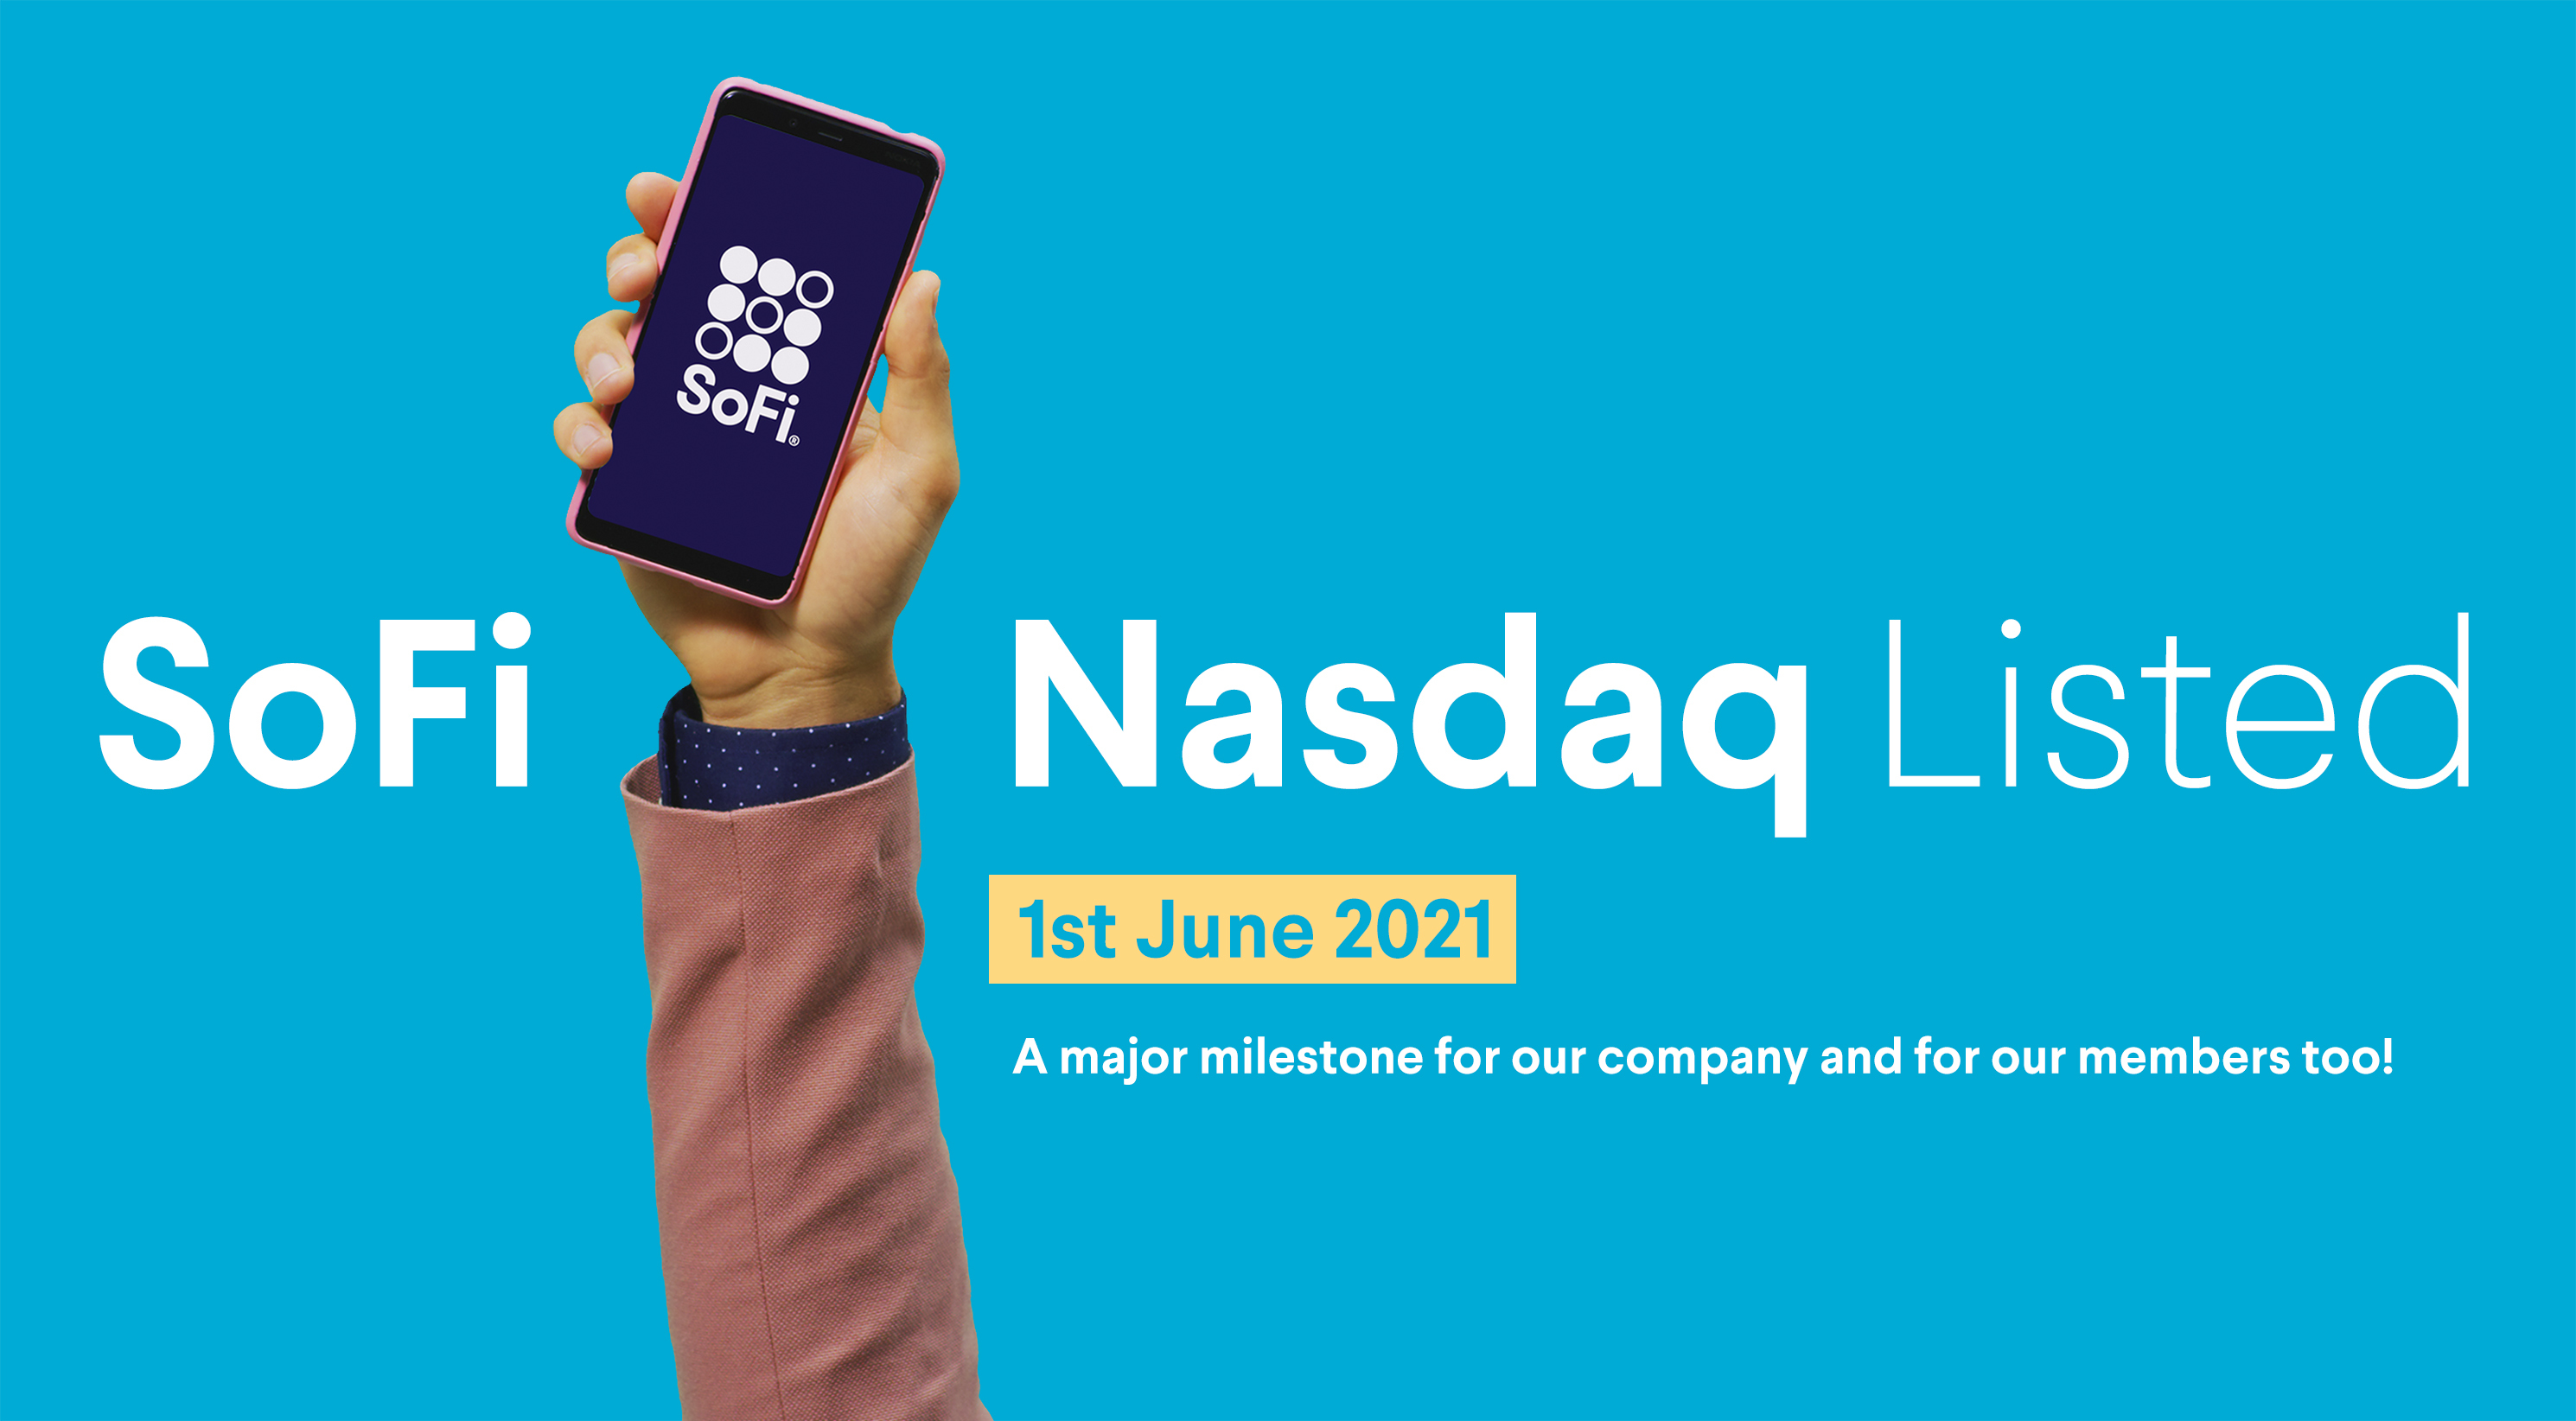 We listed on the NASDAQ! An exciting new chapter for SoFi